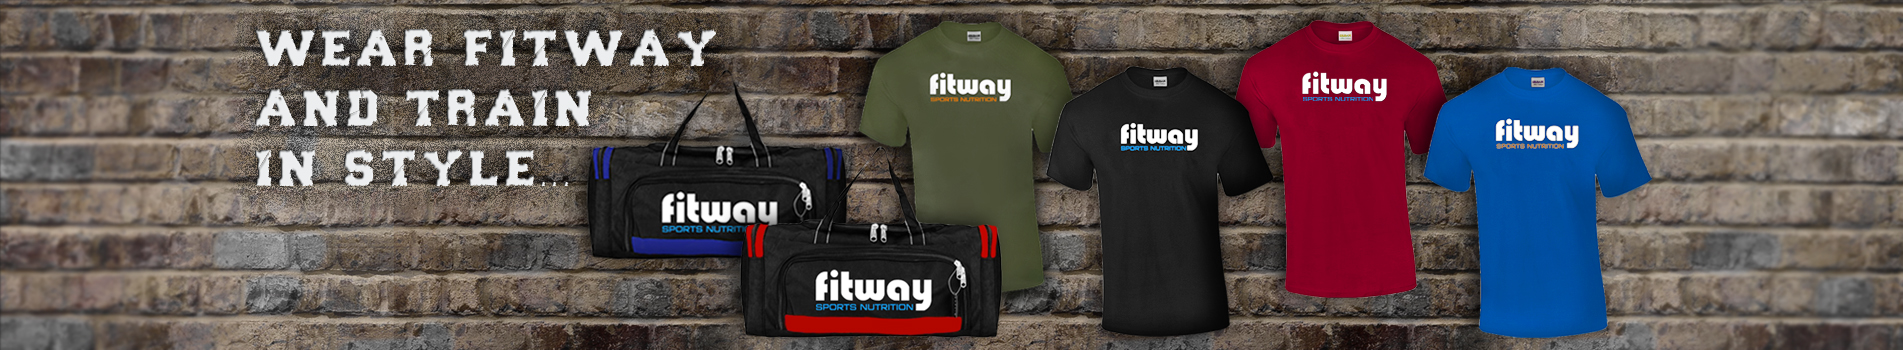 FW t-shirts & gym bags